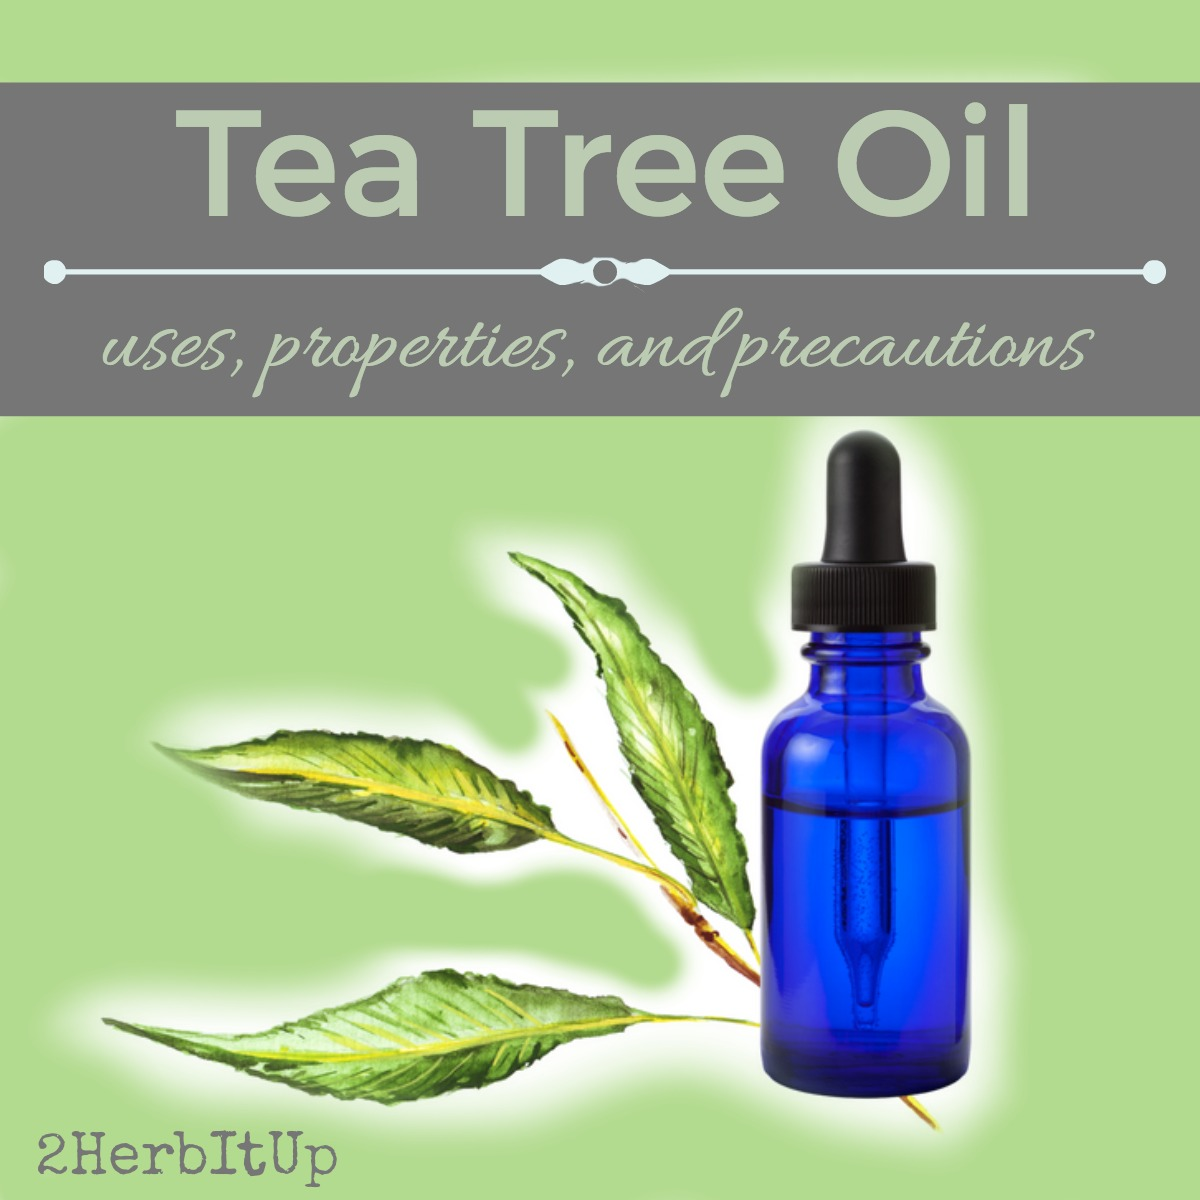 Tea tree oil has a myriad of benefits, see what all it can do here.